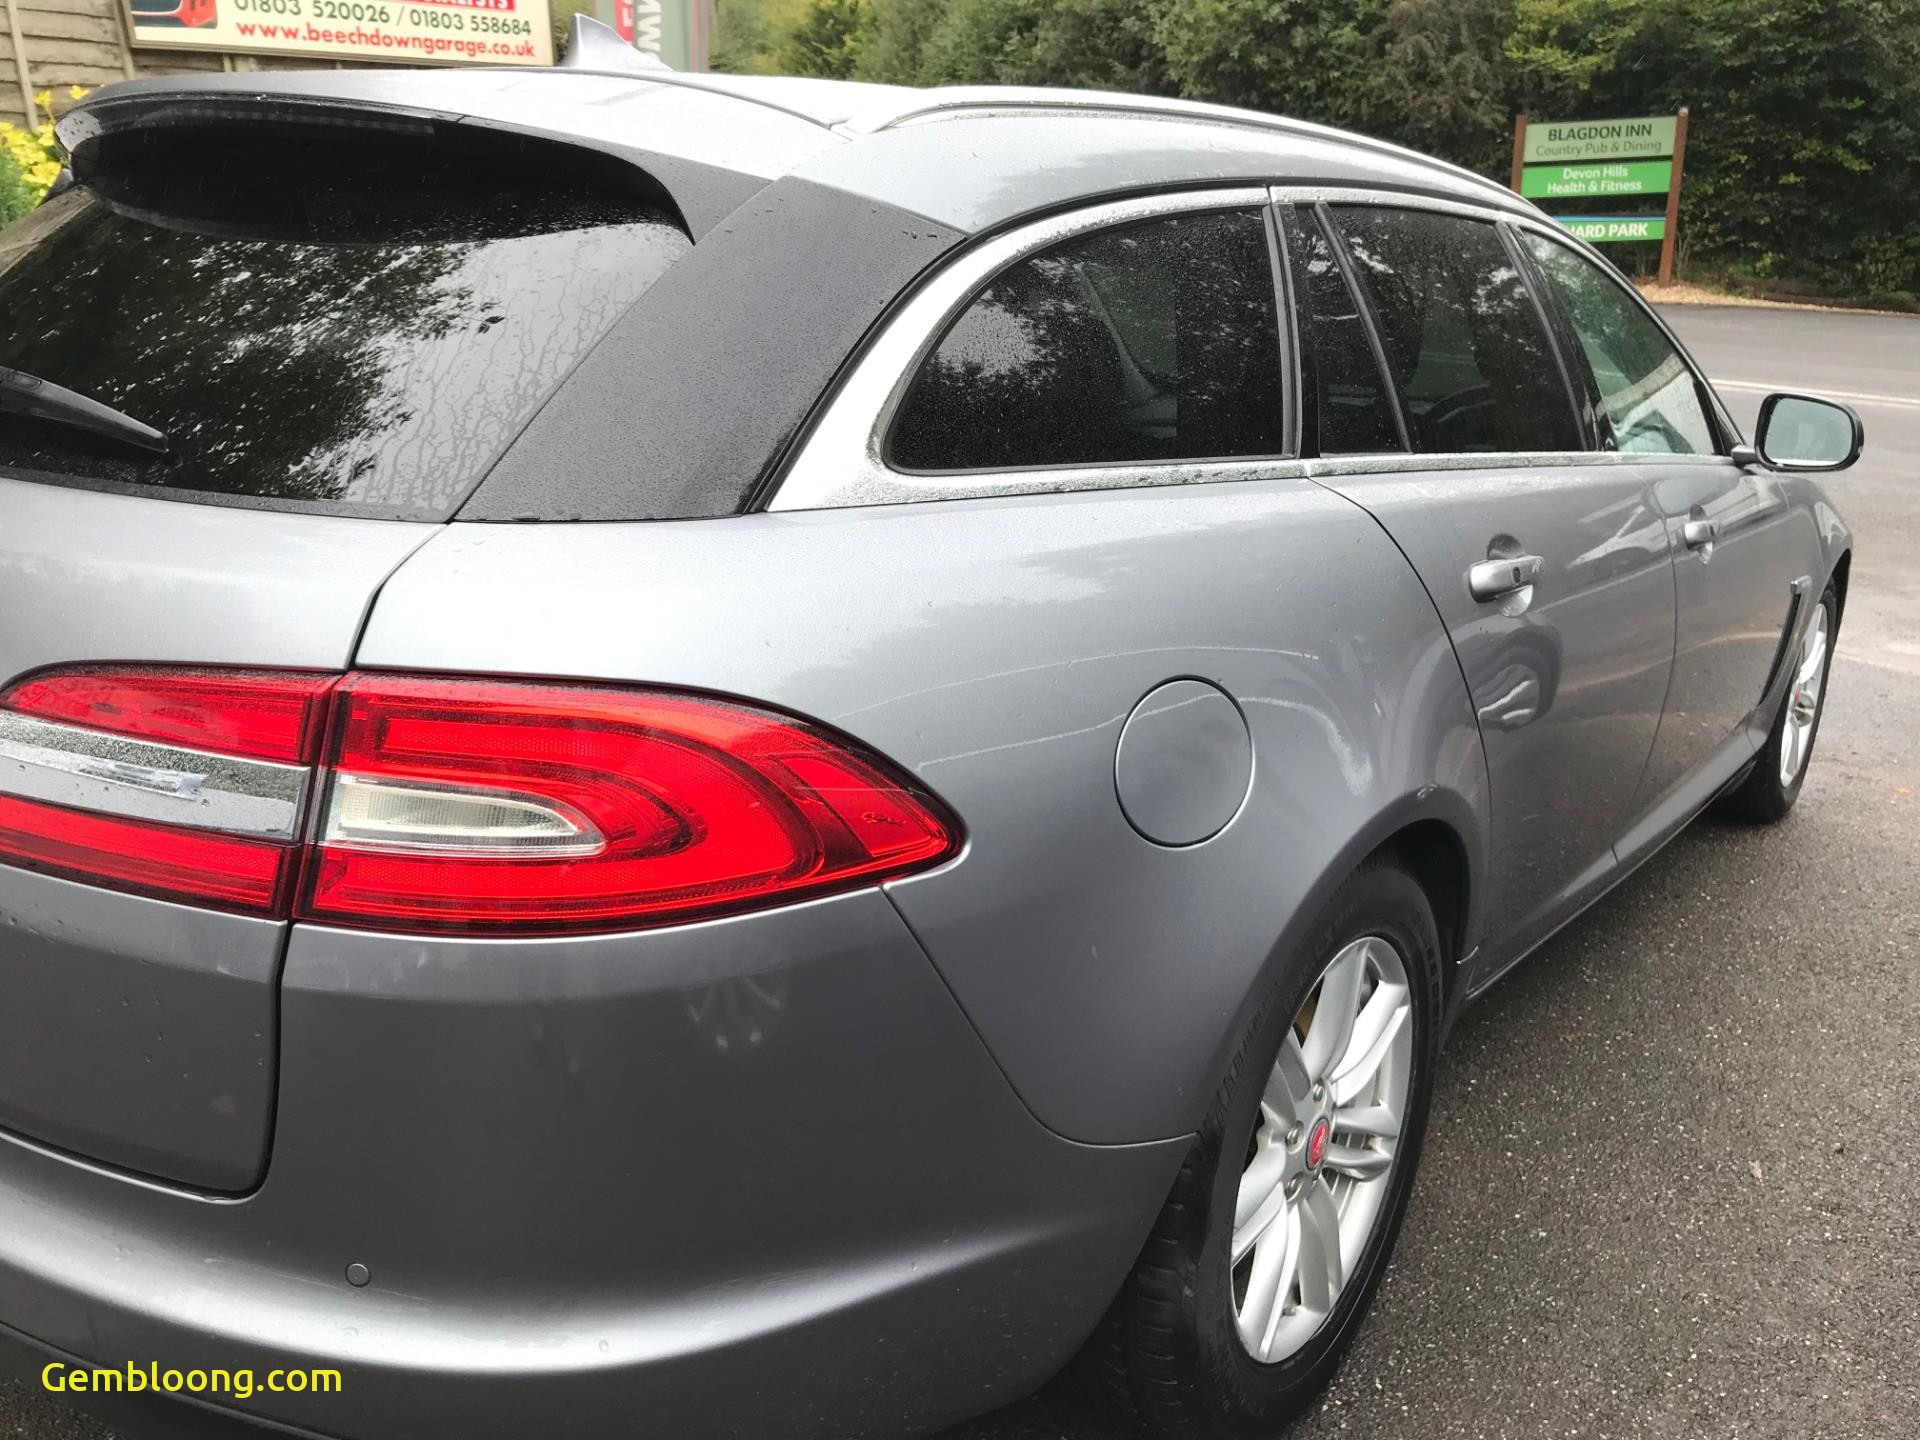 jaguar electric car used jaguar xf 3 0d v6 luxury 5dr auto 5 doors estate for of jaguar electric car 1